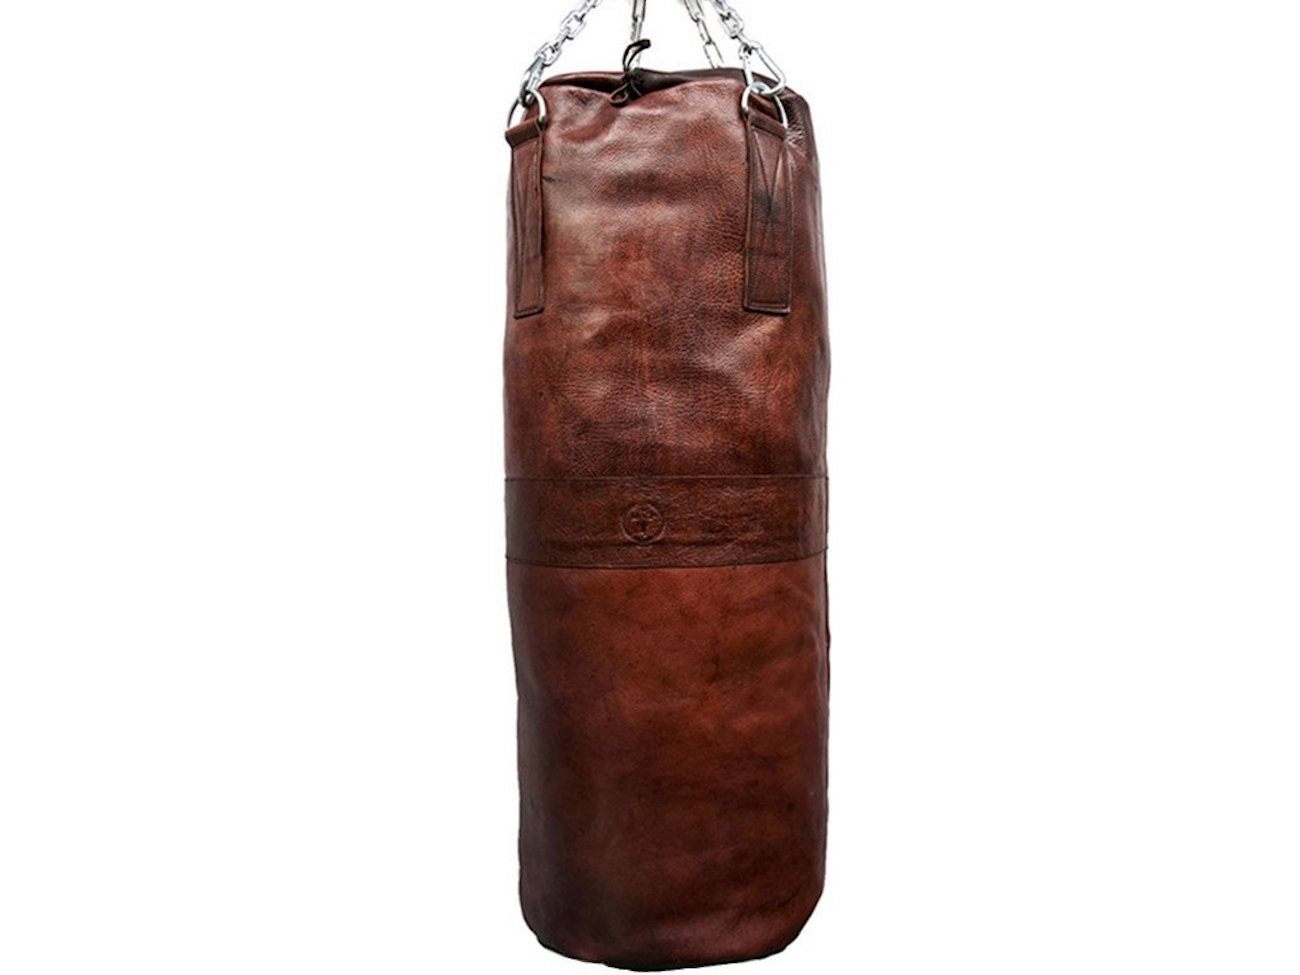 mvp heritage leather heavy punching bag review the gadget flow. Black Bedroom Furniture Sets. Home Design Ideas